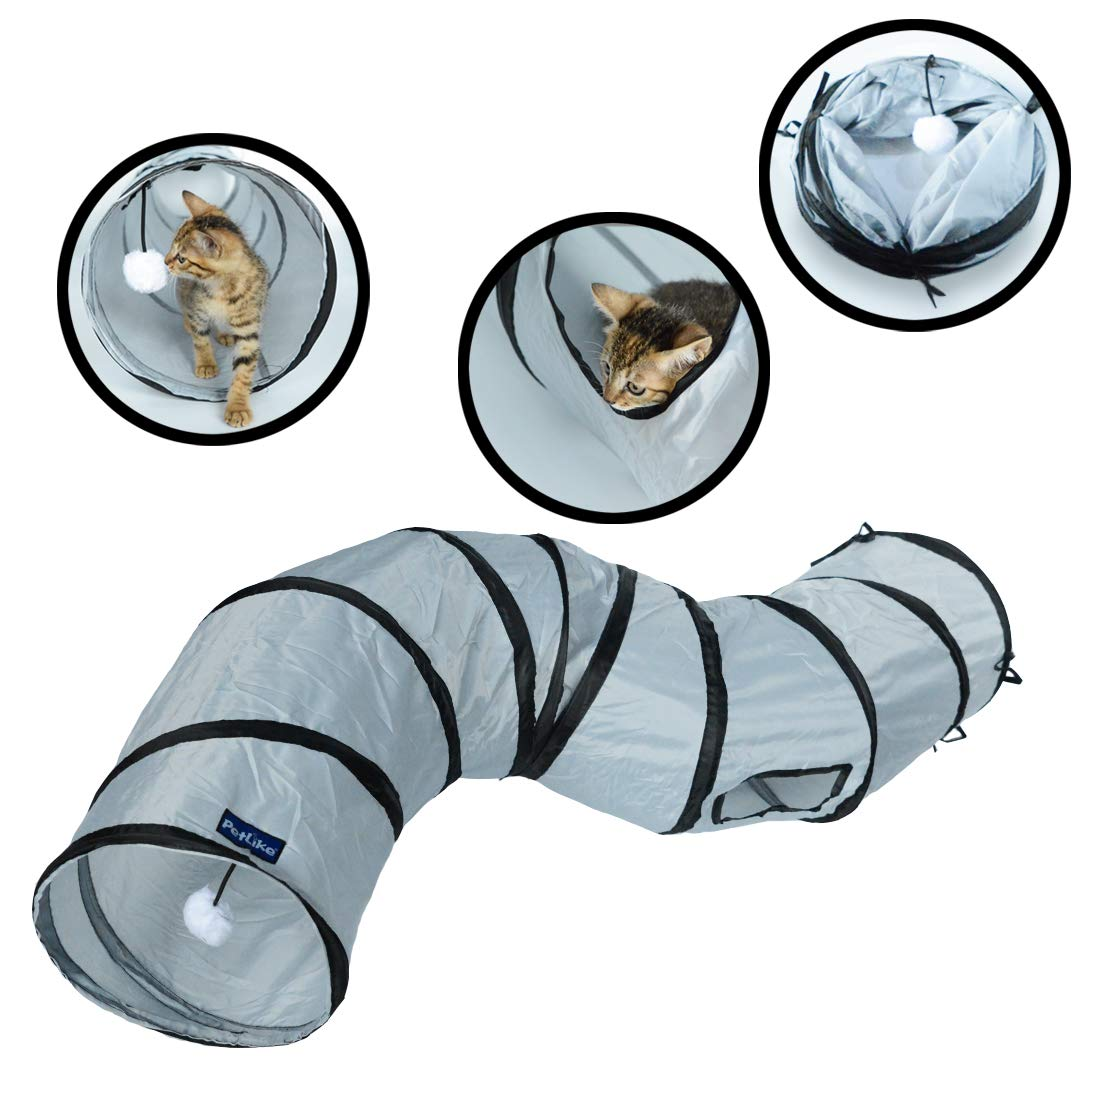 PetLike S Way Cat Tunnel Crinkle Collapsible Pet Tube Hideaway Play Toy with Ball by PetLike (Image #1)